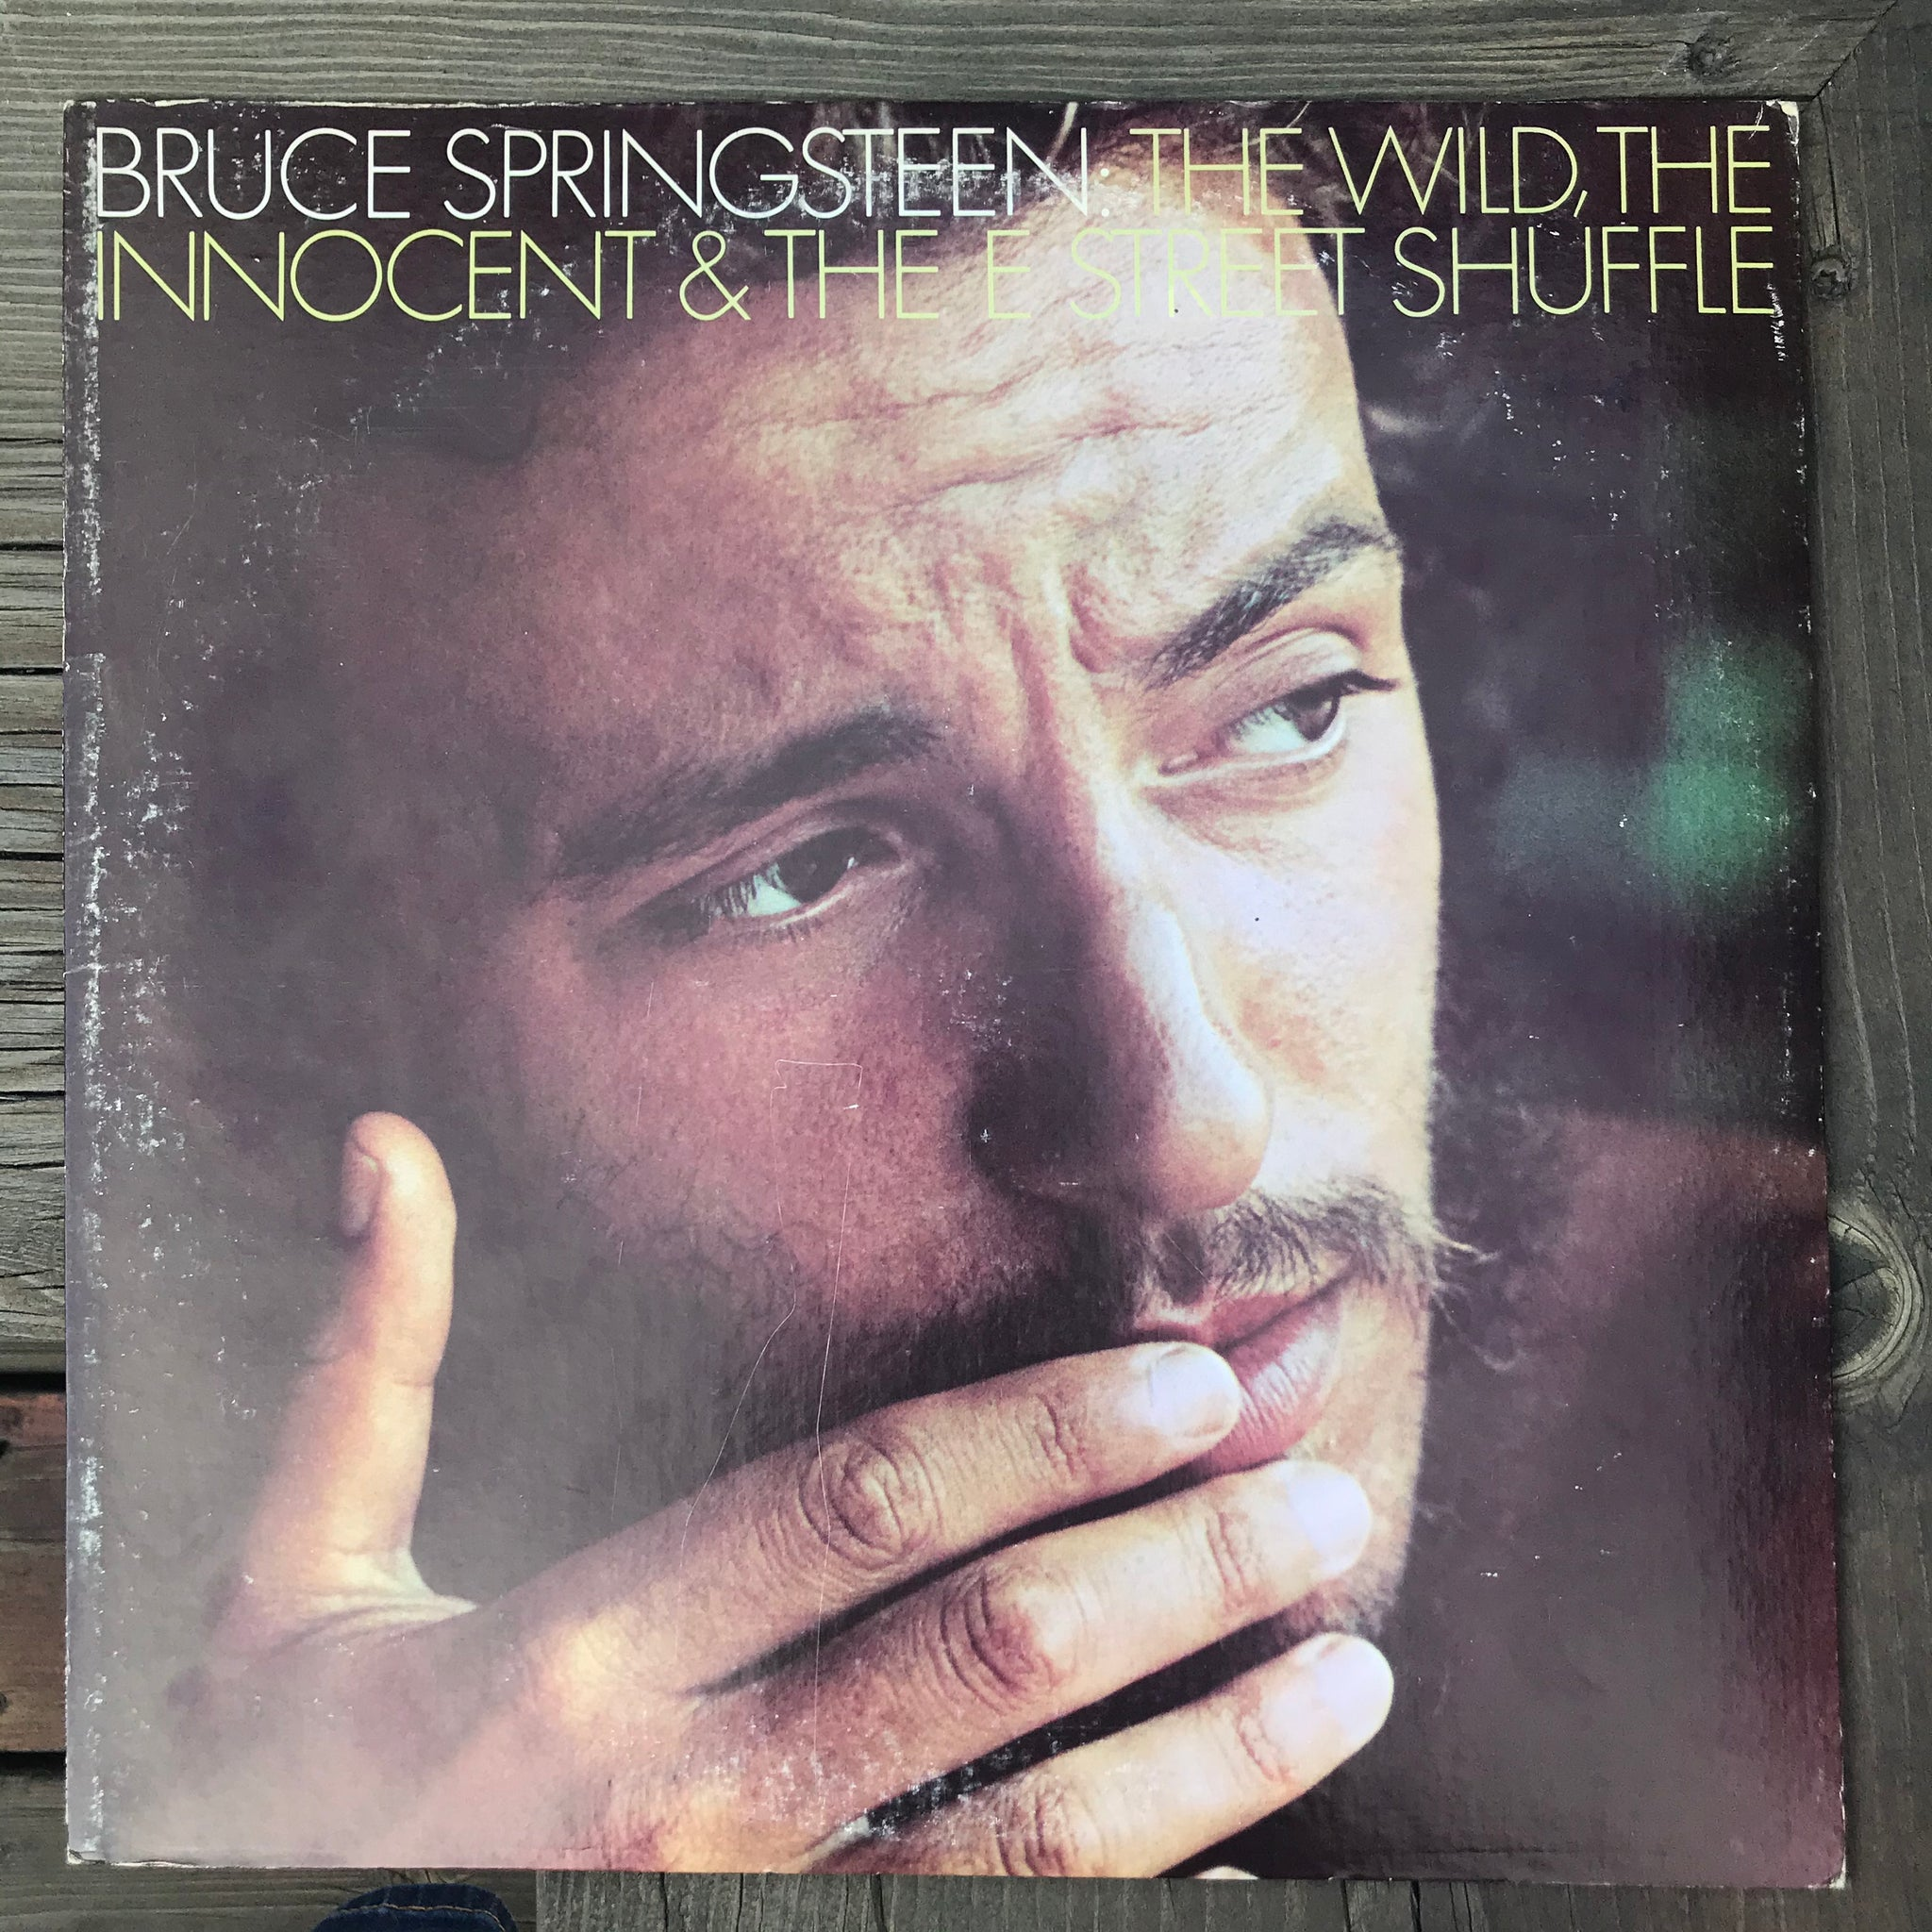 Bruce Springsteen - The Wild, The Innocent & The E Street Shuffle (USED LP)